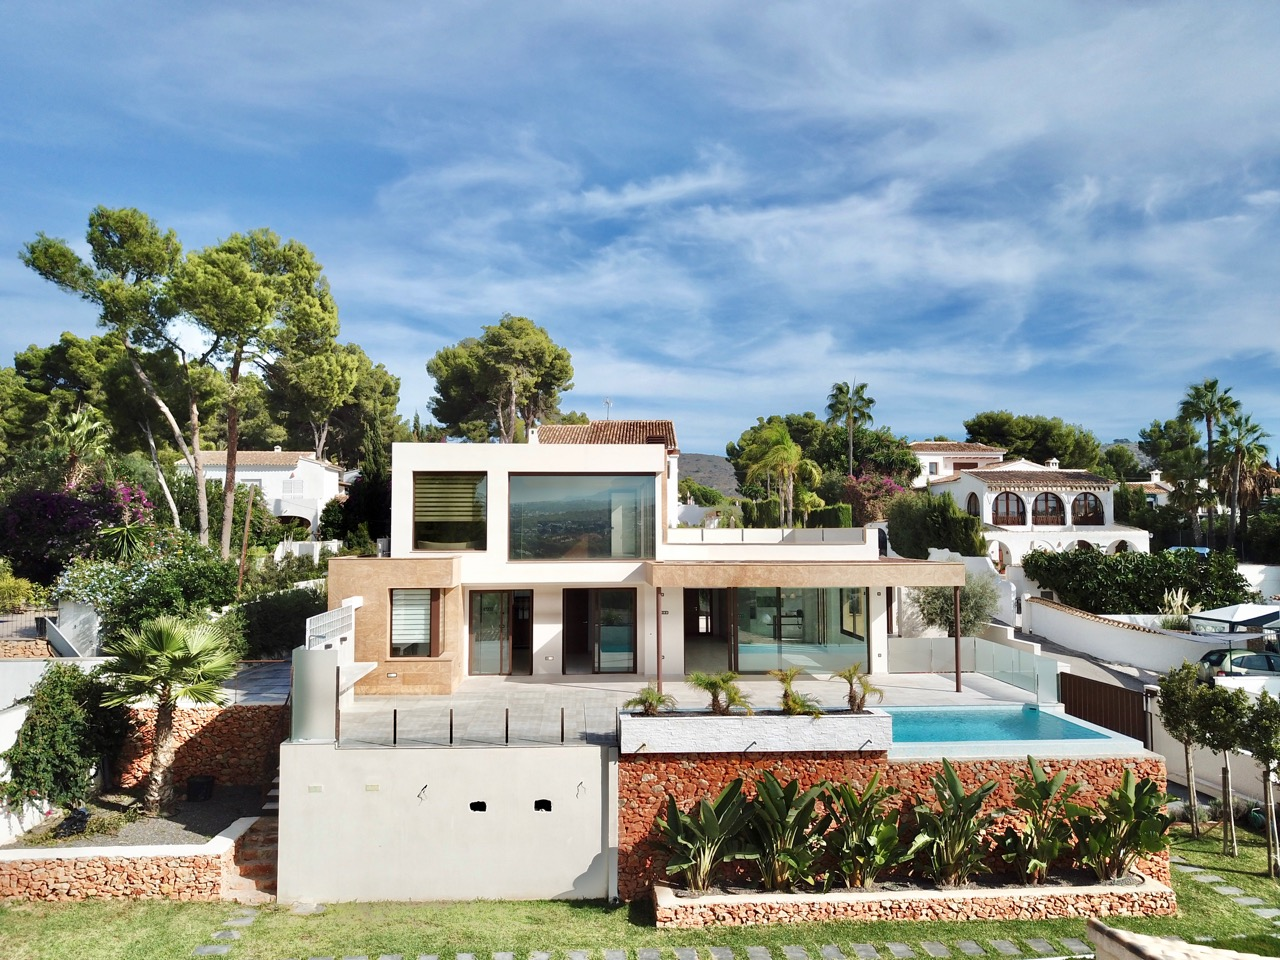 Villa For New build in Moraira, Alicante (Costa Blanca)